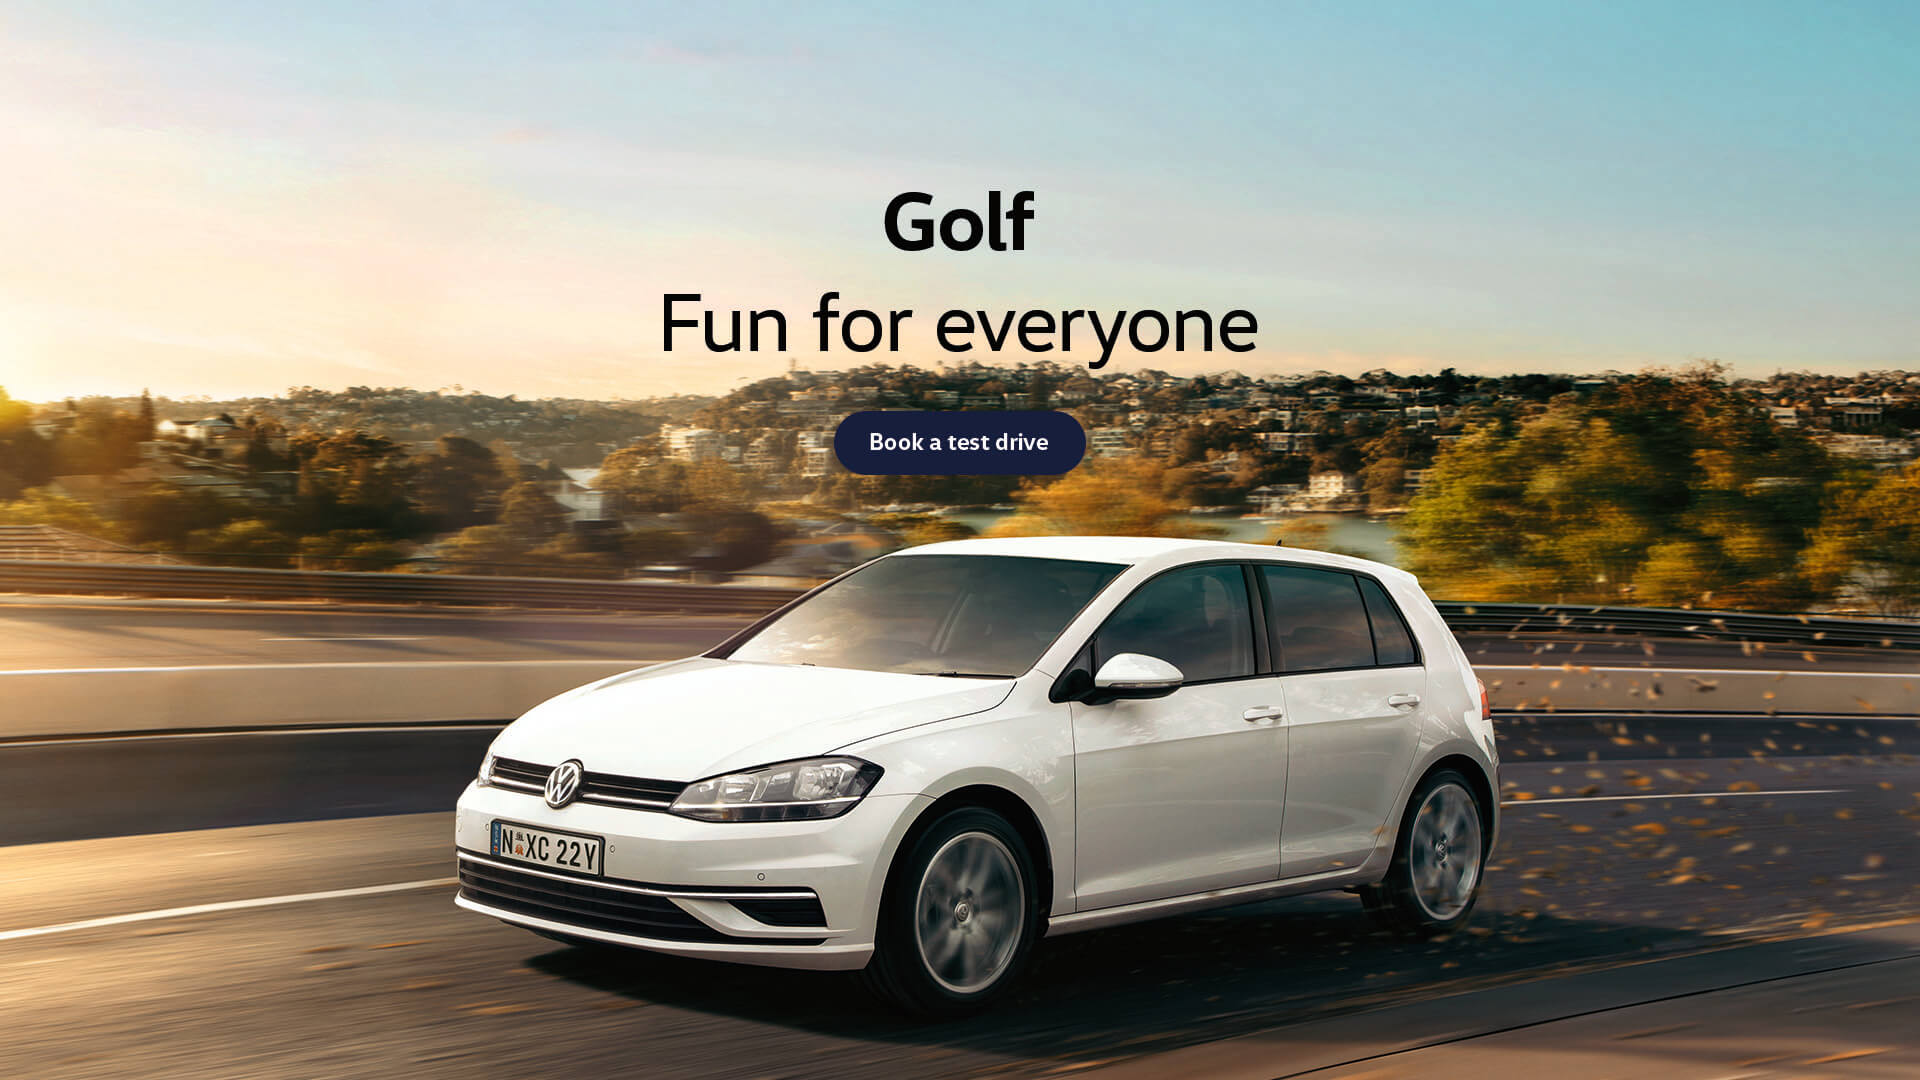 Volkswagen Golf. Fun for everyone. Test drive today at Geoff King Volkswagen, Coffs Harbour.